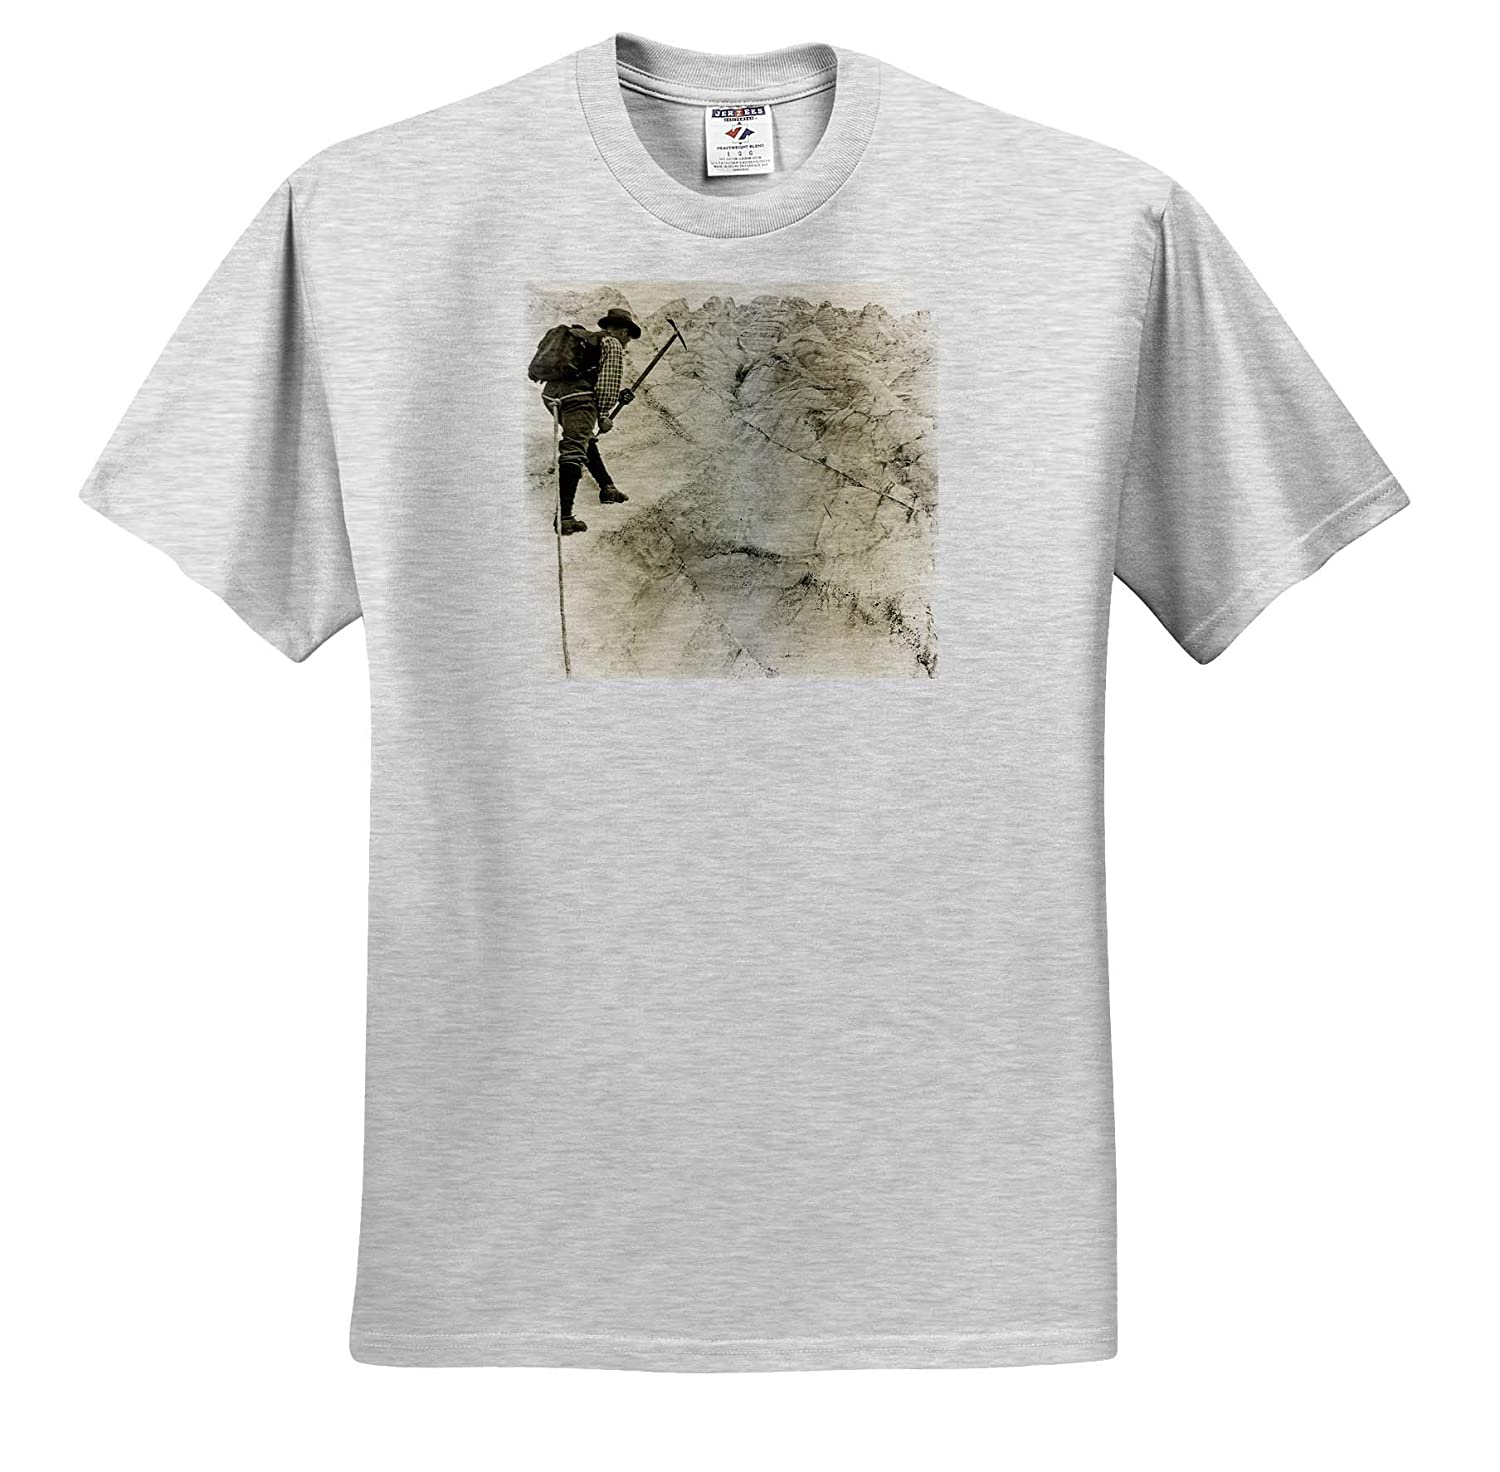 3dRose Scenes from The Past Mountaineer on The Great Glacier British Columbia Canada Vintage 1890s T-Shirts Stereoview